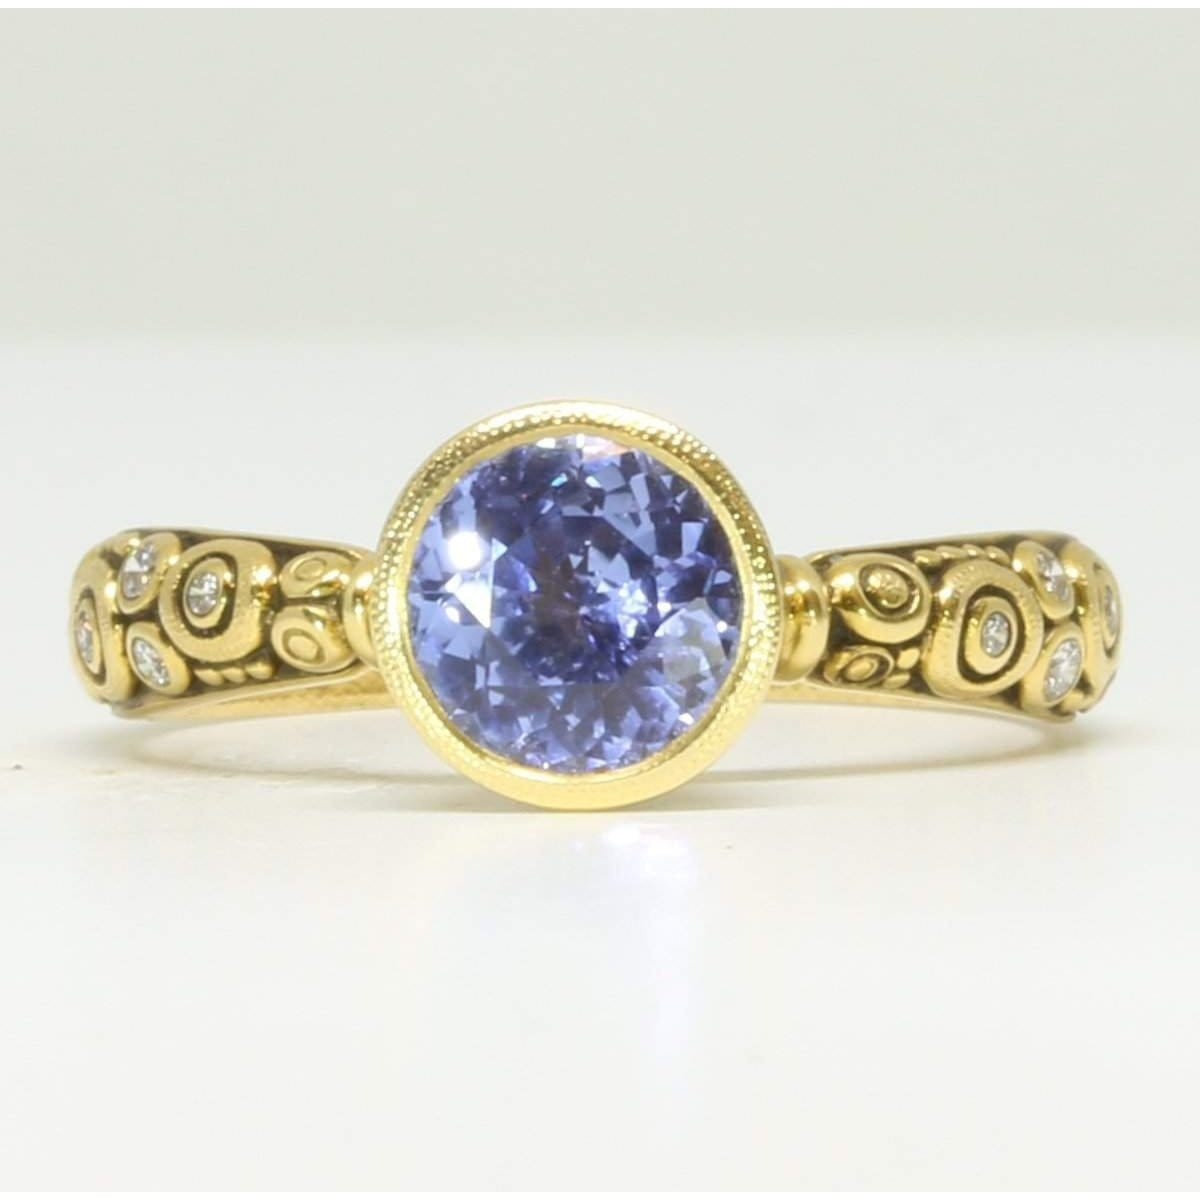 Martini Blue Sapphire Ring - R-128YY7.3-Alex Sepkus-Renee Taylor Gallery